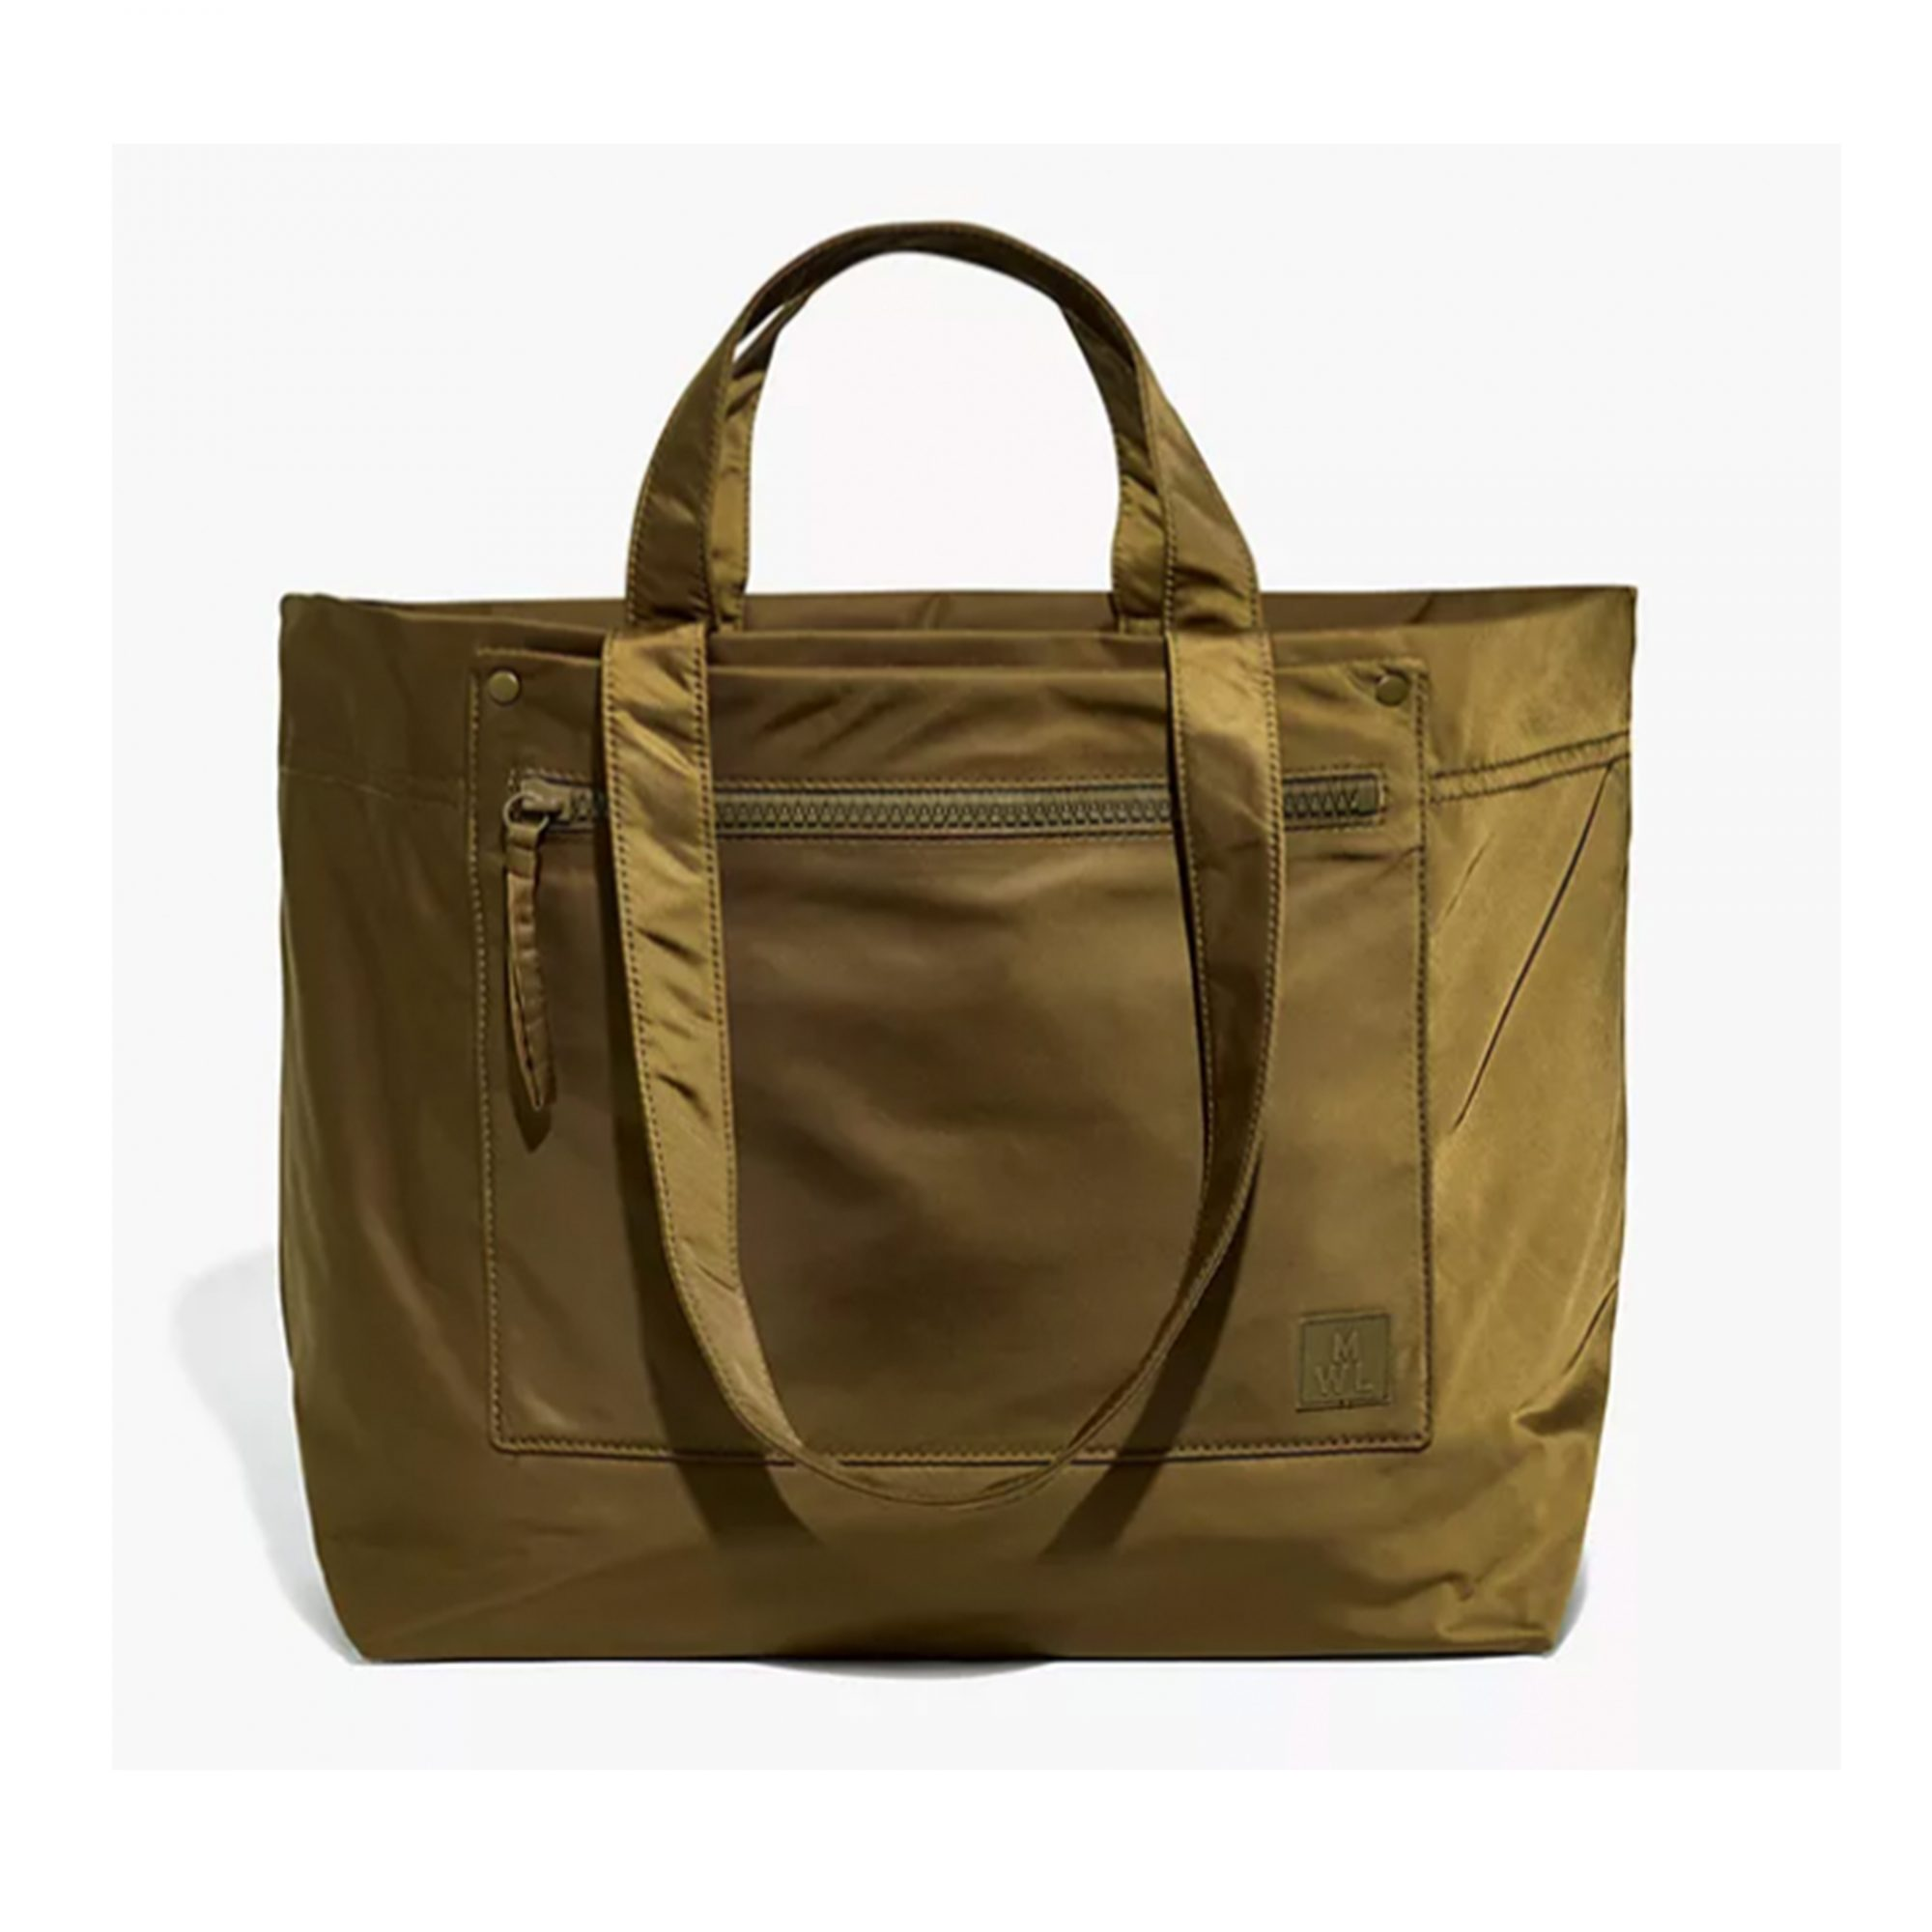 madewell-tote-bag, best-travel-bags